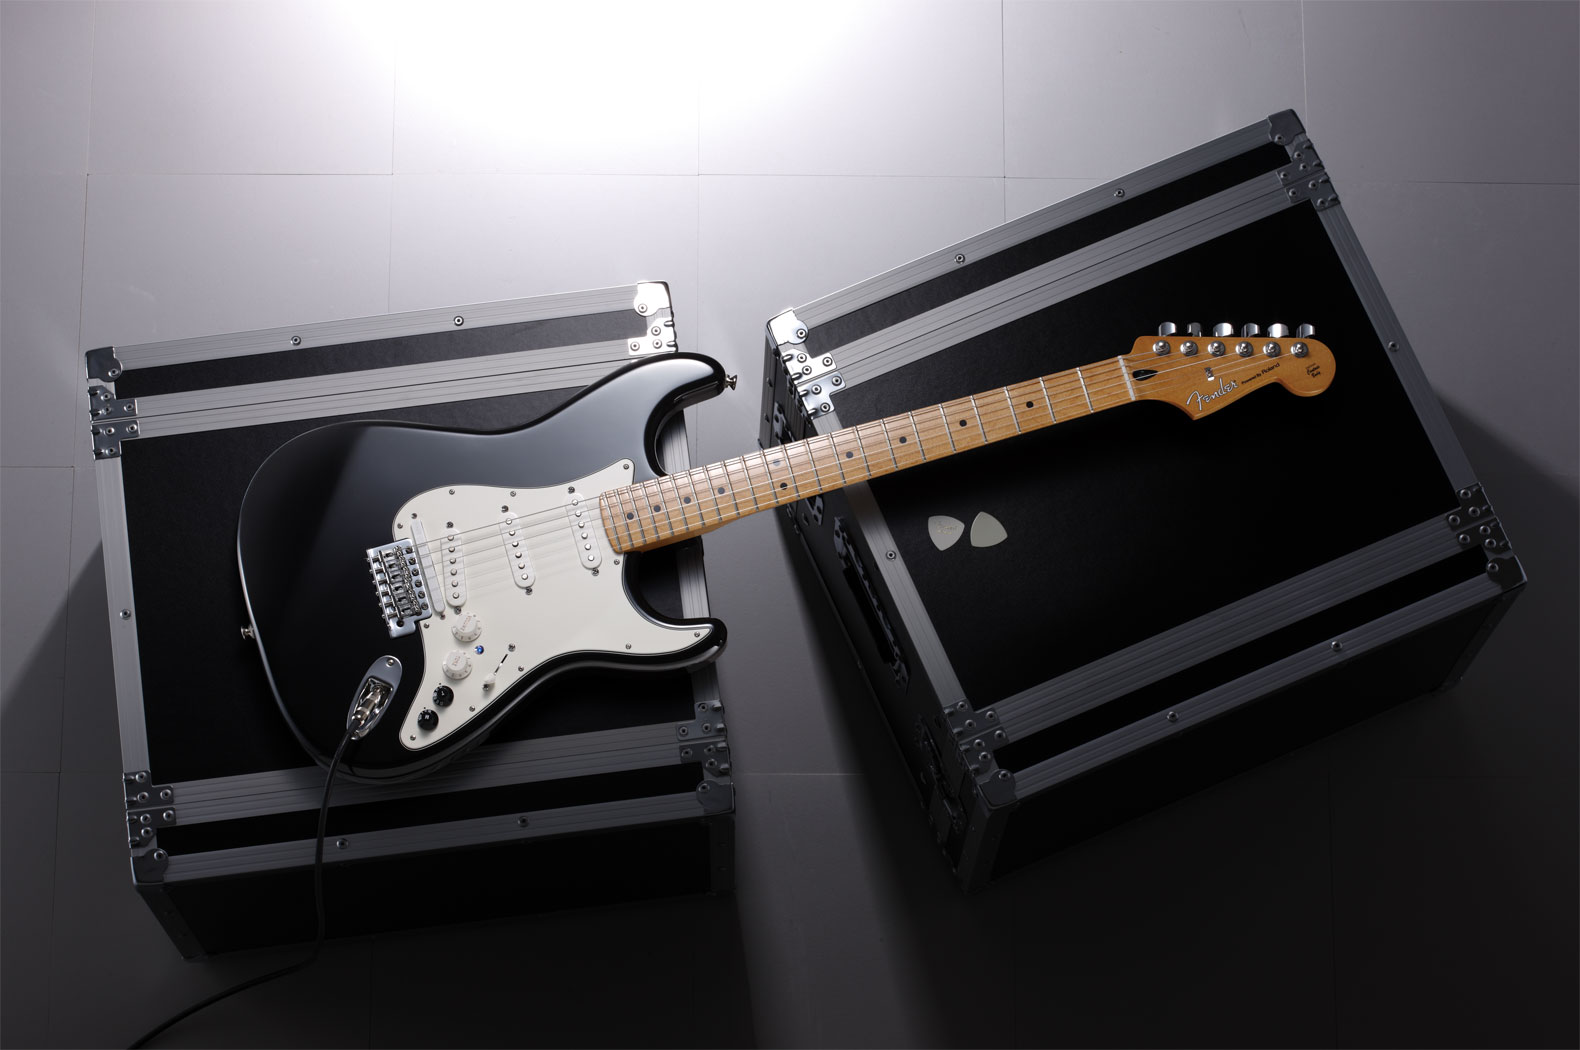 Roland G 5 Vg Stratocaster Rg Series Guitars With Dual Humbuckers And The Position Switch